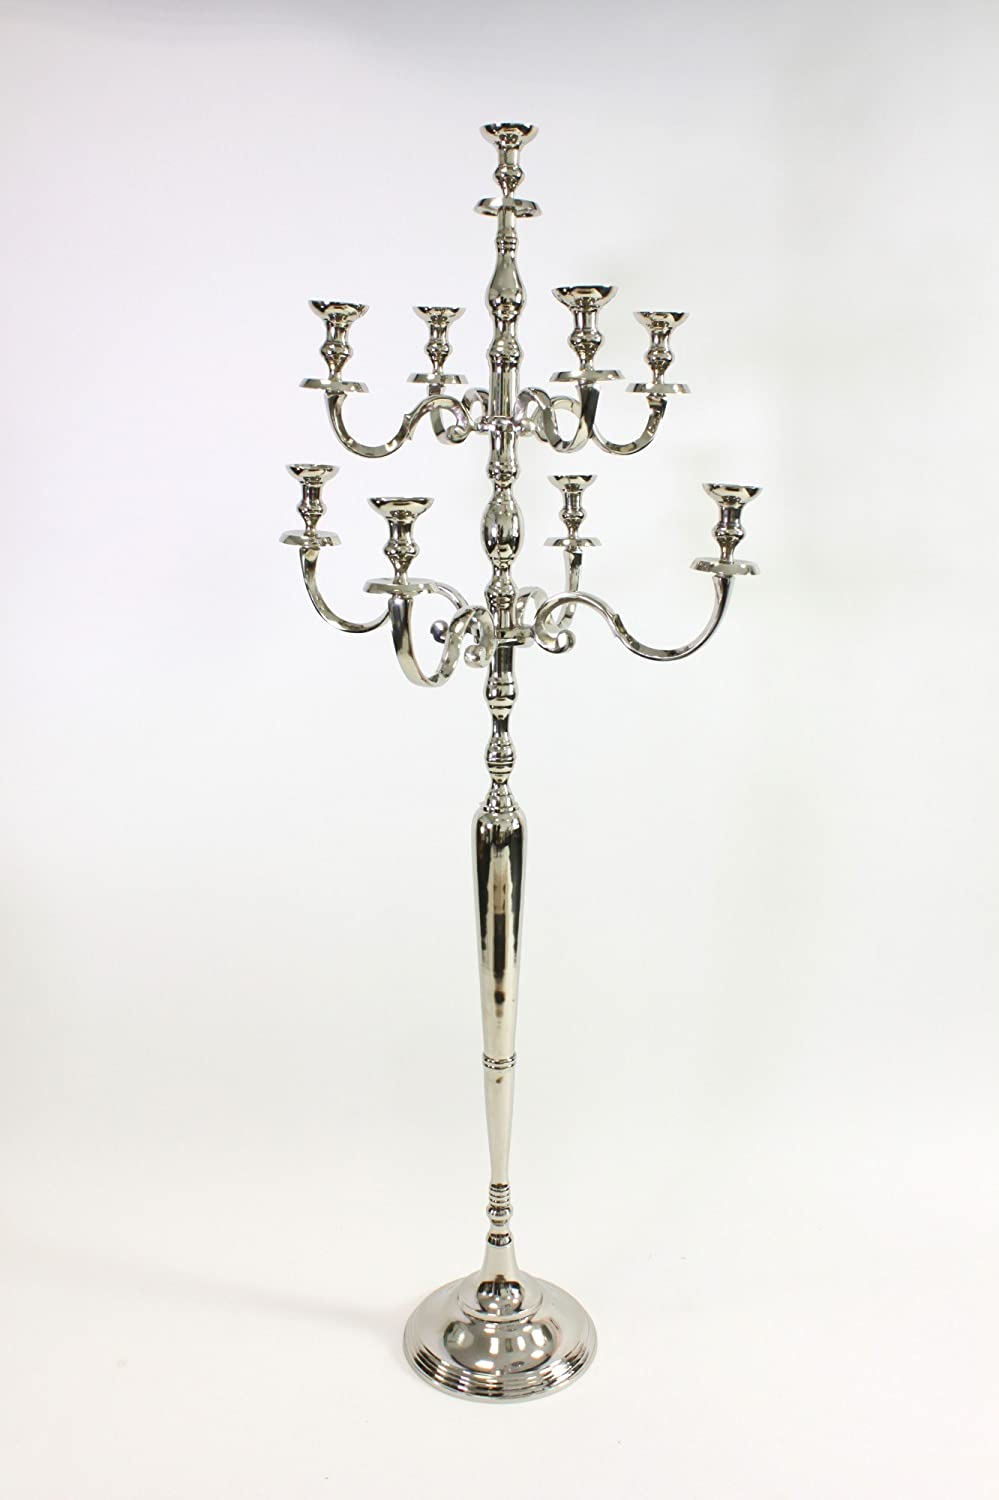 Heavy XXL Candle Holder Silver 180cm Candelaber Candle holders Baroque Antique DAFLOXX